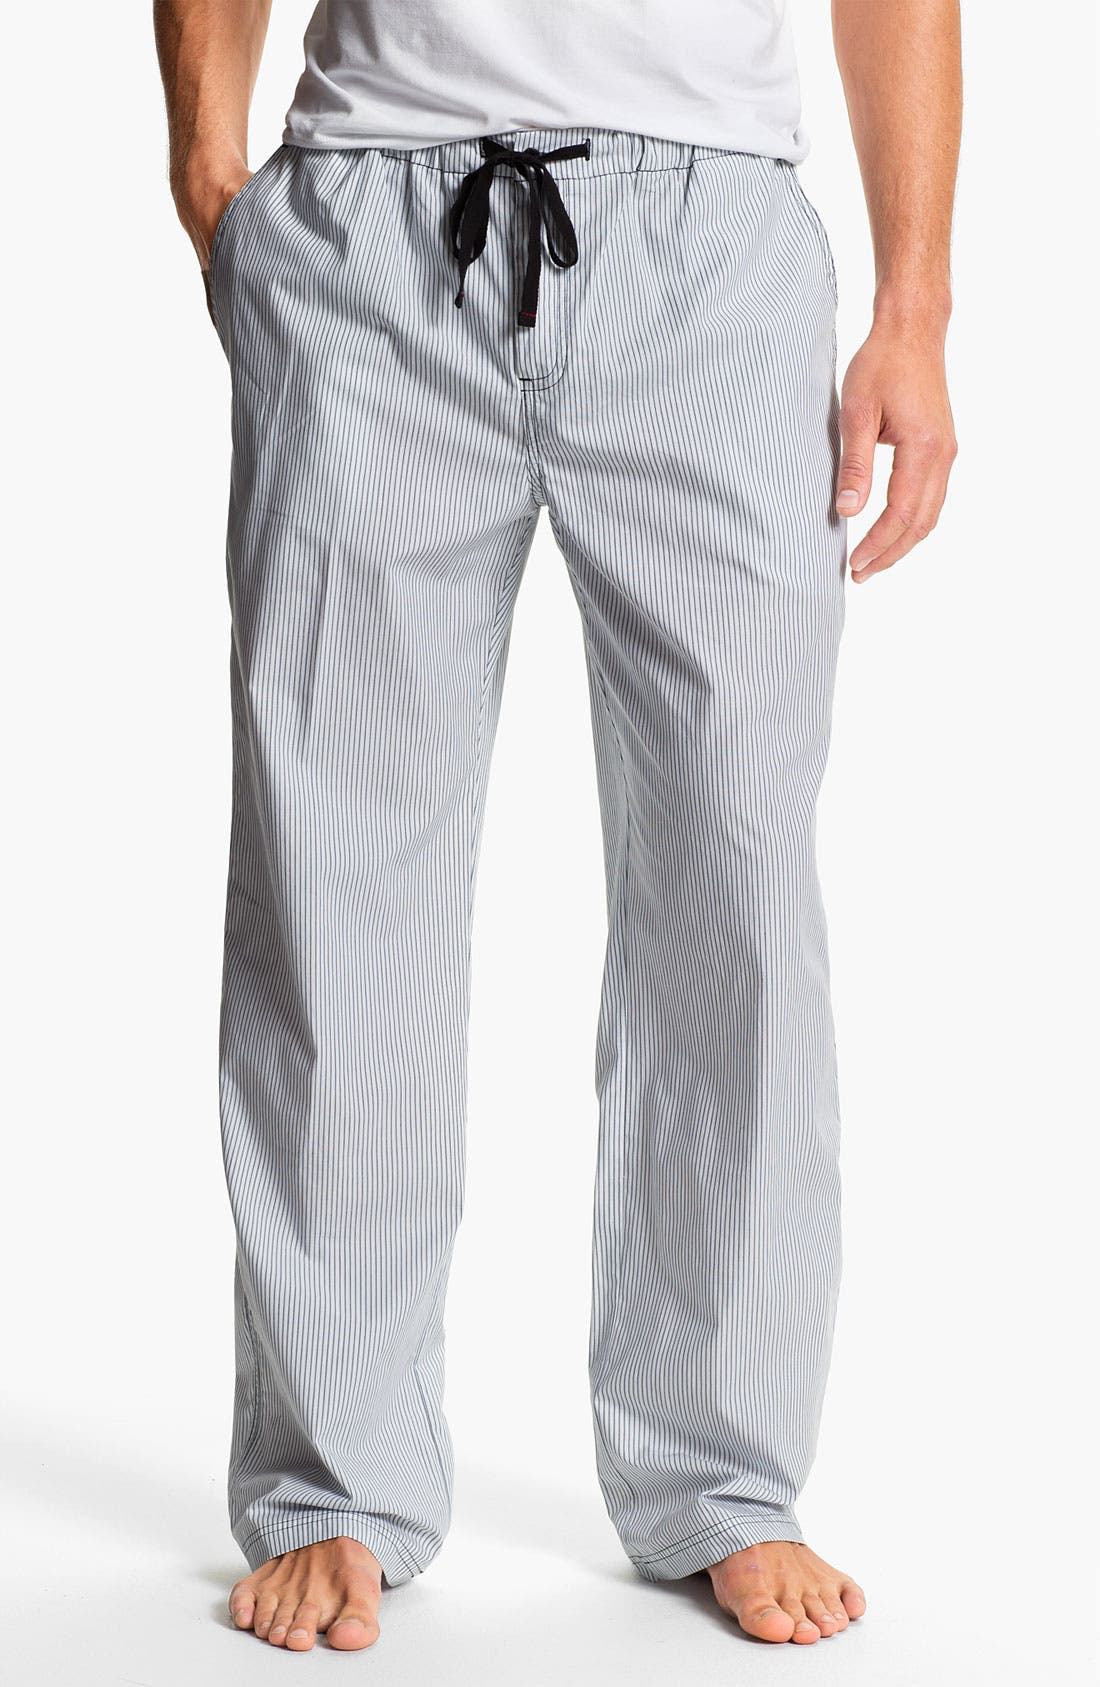 Alternate Image 1 Selected - Daniel Buchler Woven Cotton Lounge Pants